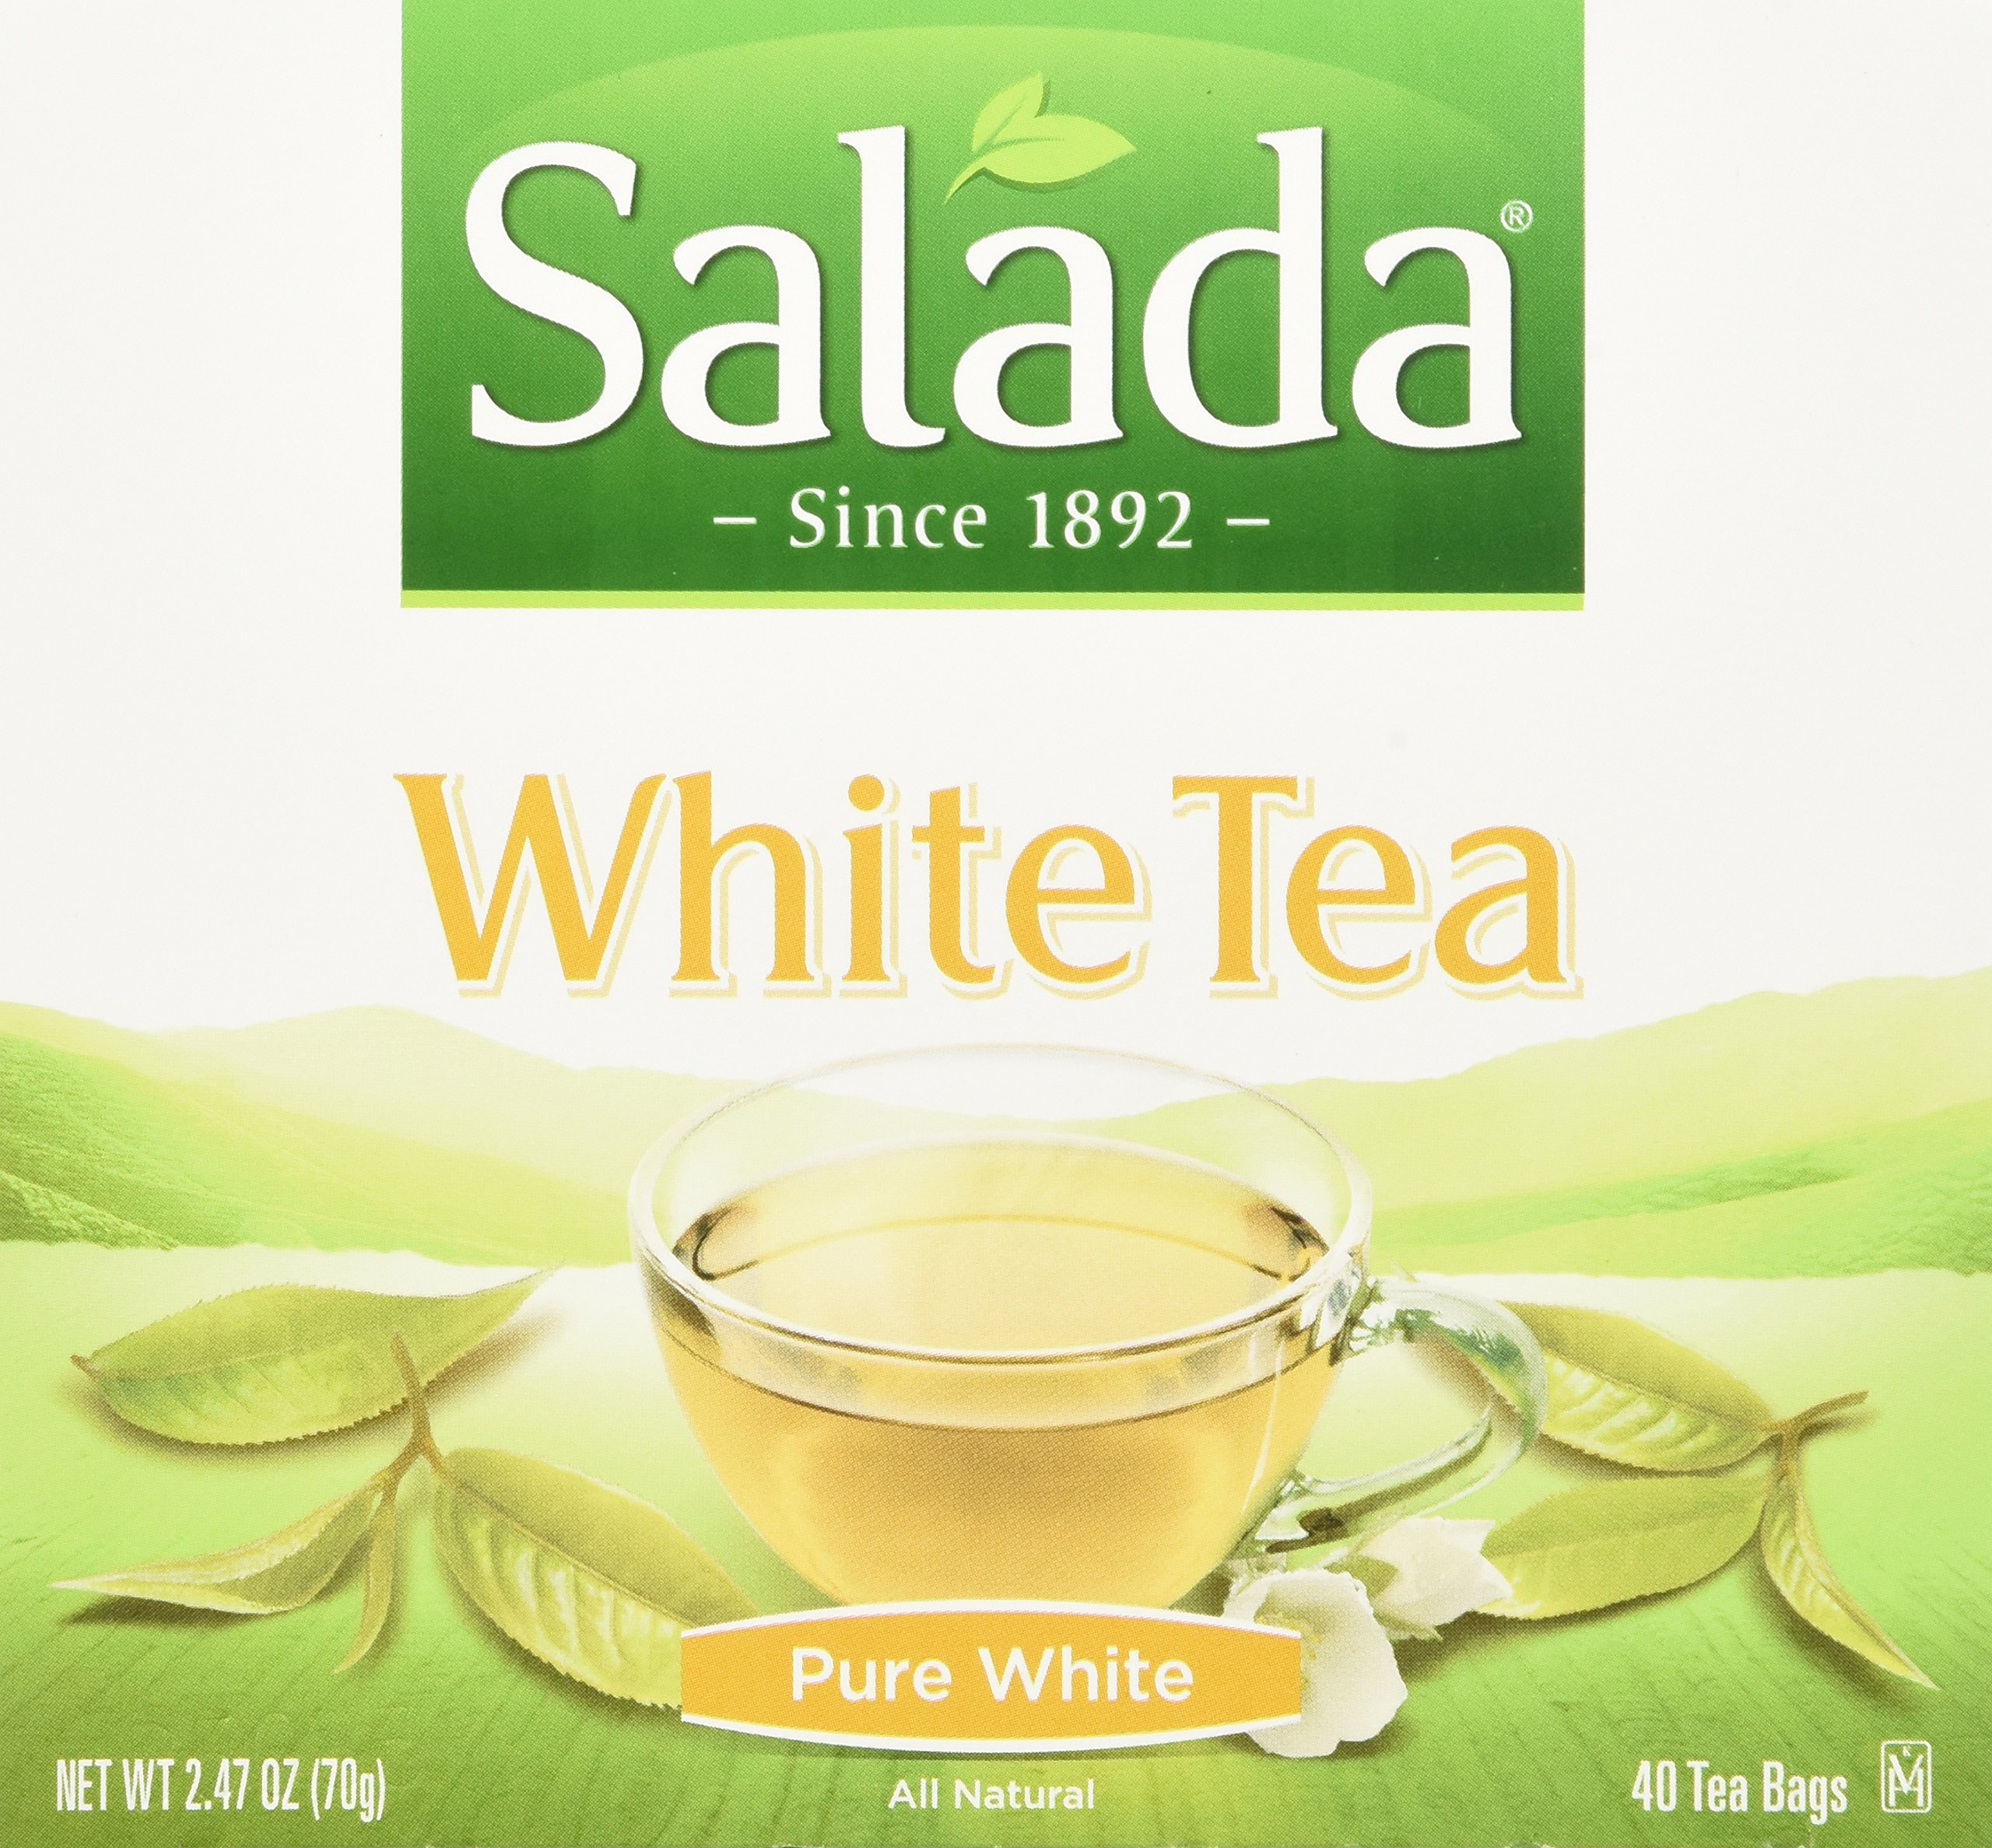 Salada 100% Pure White Tea 40ct (Case of 6 boxes) by Salada